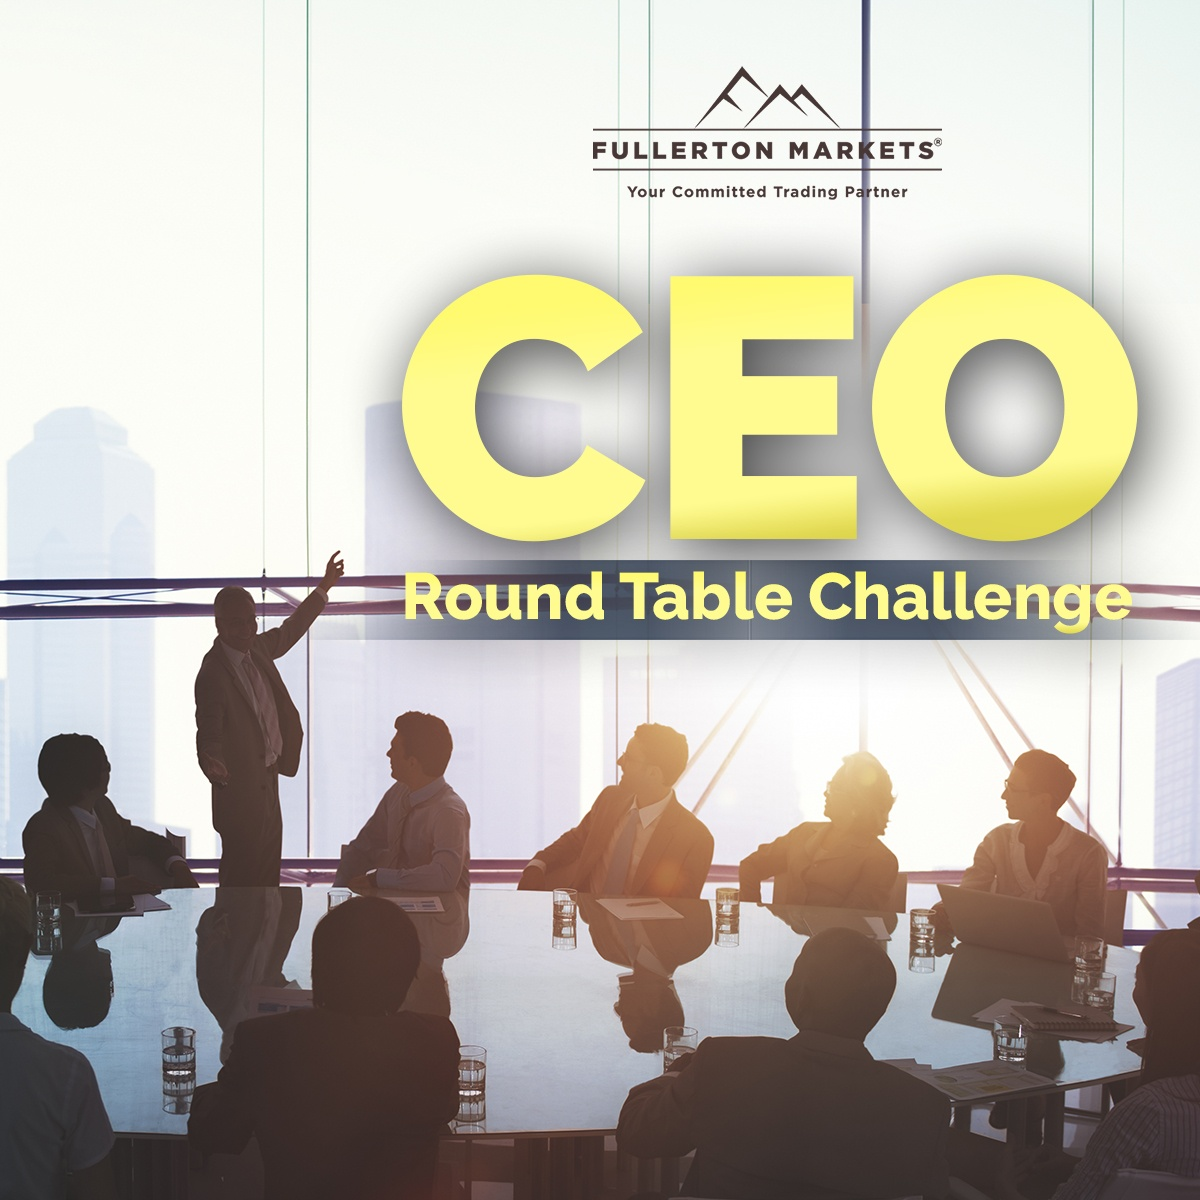 CEO round table challenge